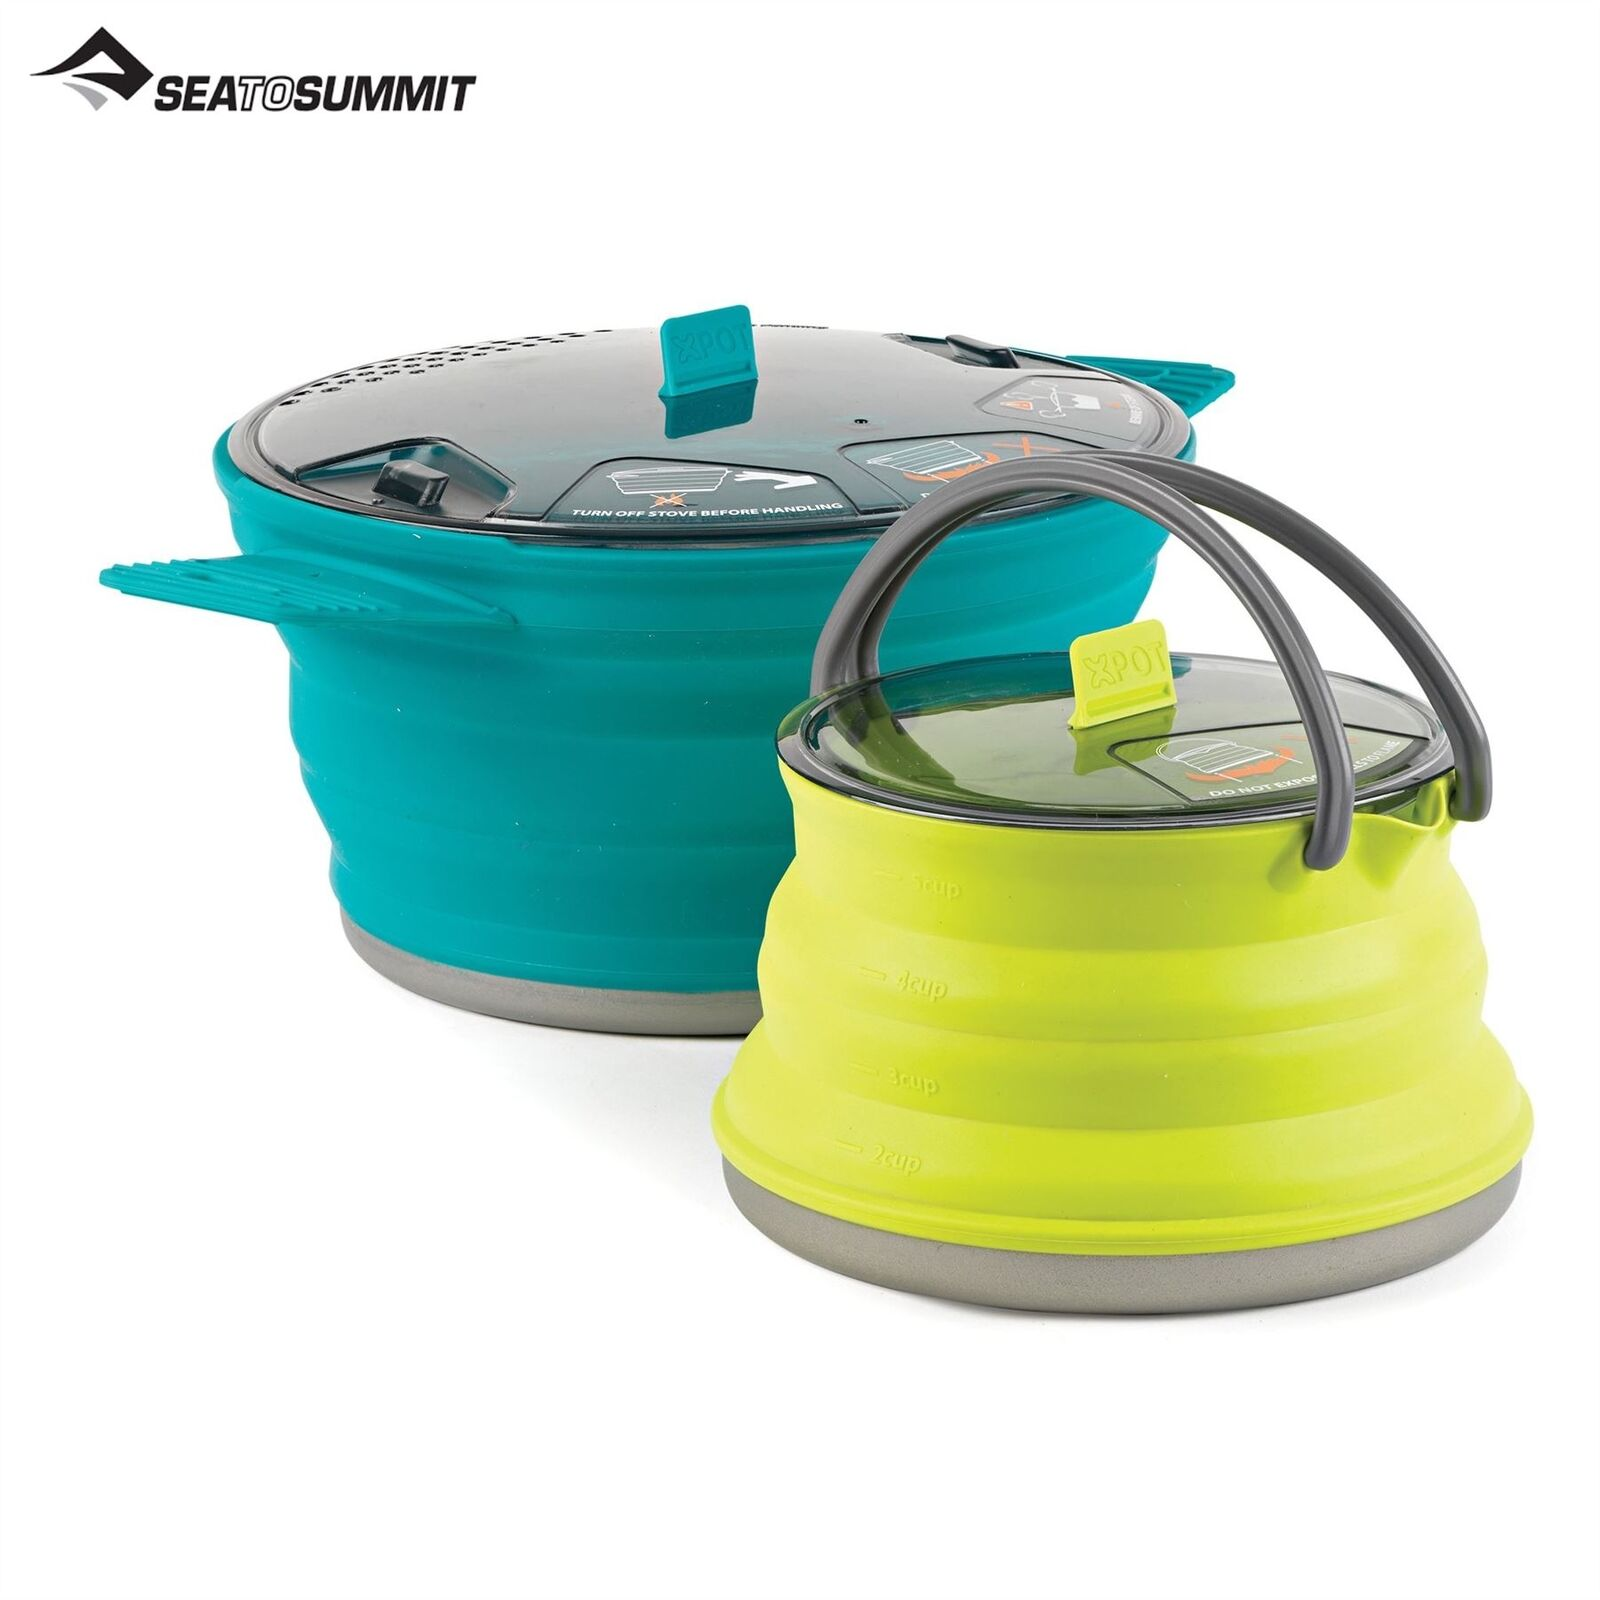 Sea To Summit Pliable Camping Kettle & Casserole Pot sans Bpa Silicone Léger